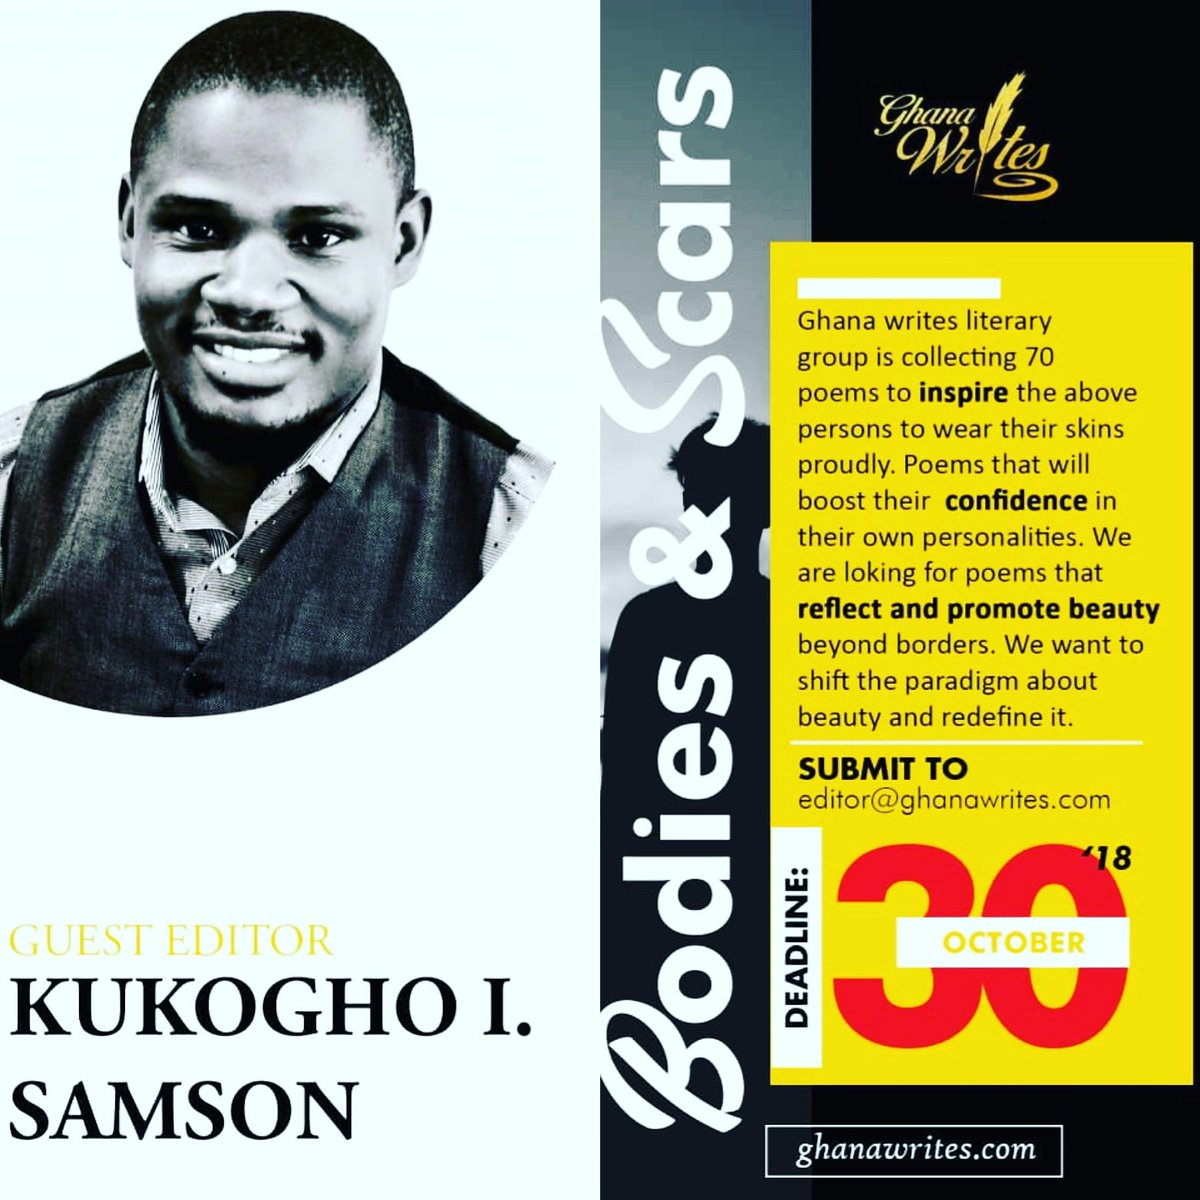 MEET ONE OF THE GUEST EDITORS OF BODIES & SCARS ANTHOLOGY, Sir KIS. Kukogho Iruesiri Samson is a multiple award-winning Nigerian Writer, Poet and the CEO of WRR publishing house. Read more about him and the submission guidelines: ghanawrites.com/a-call-for-sub…